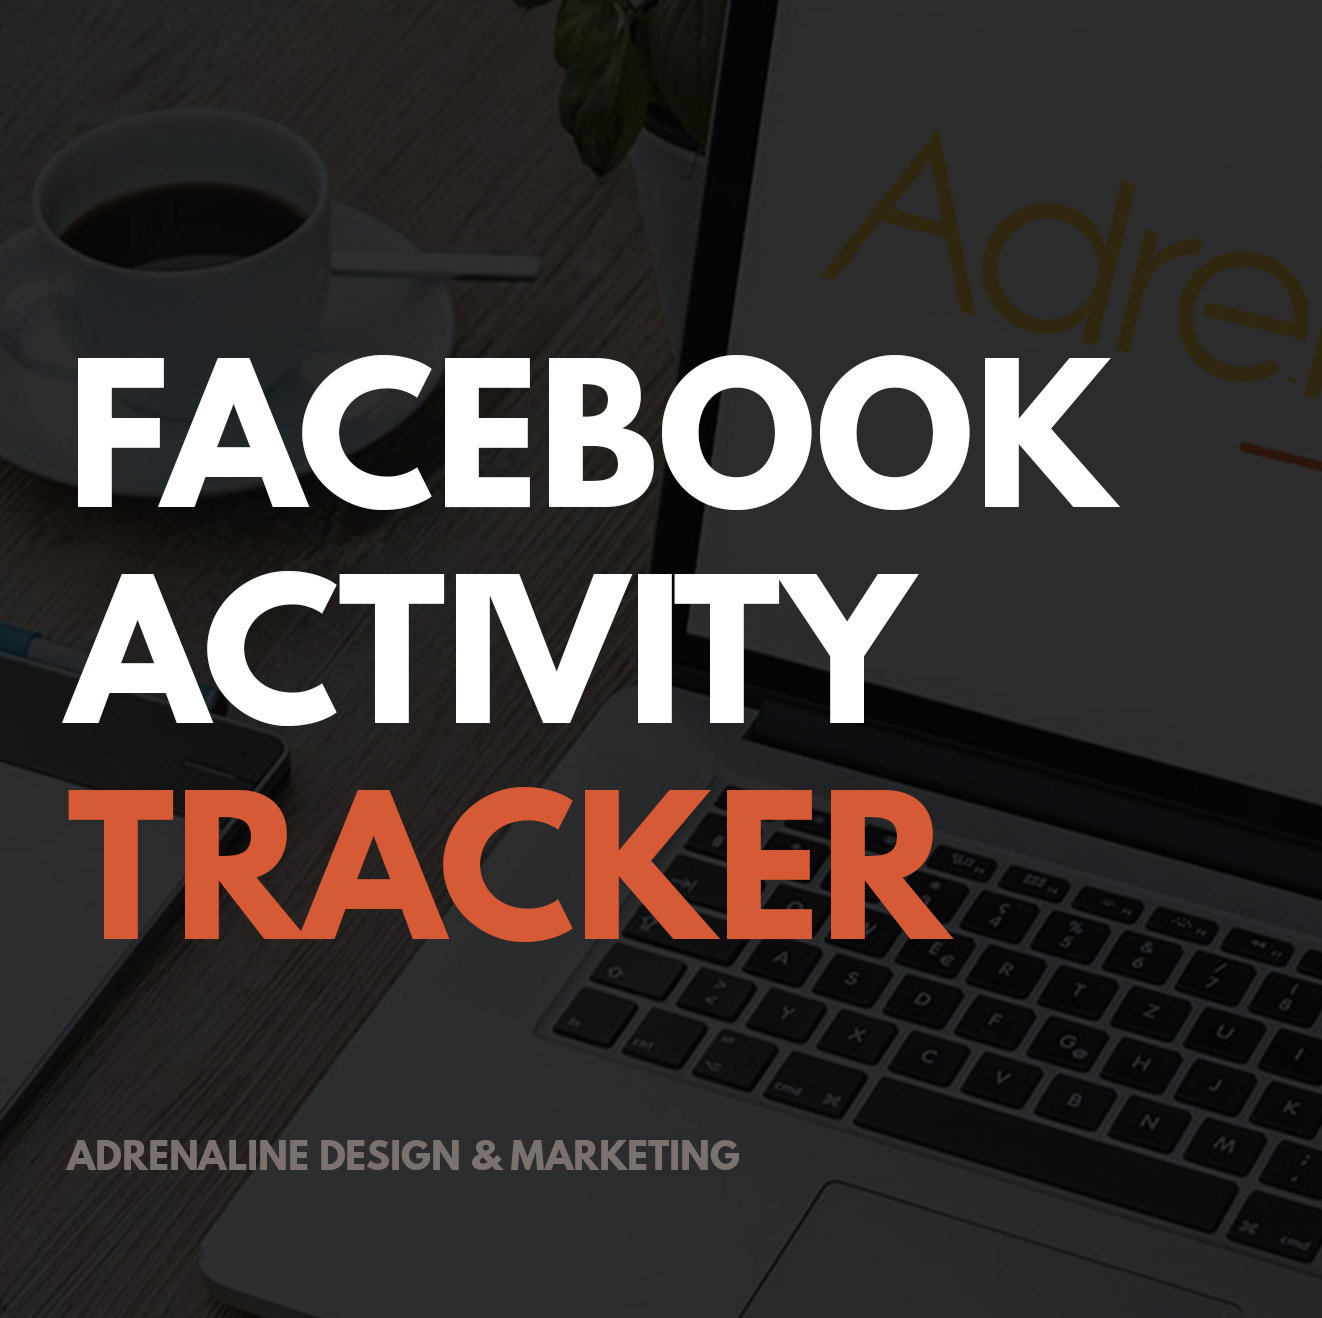 Facebook Activity Tracker – How To Switch It Off